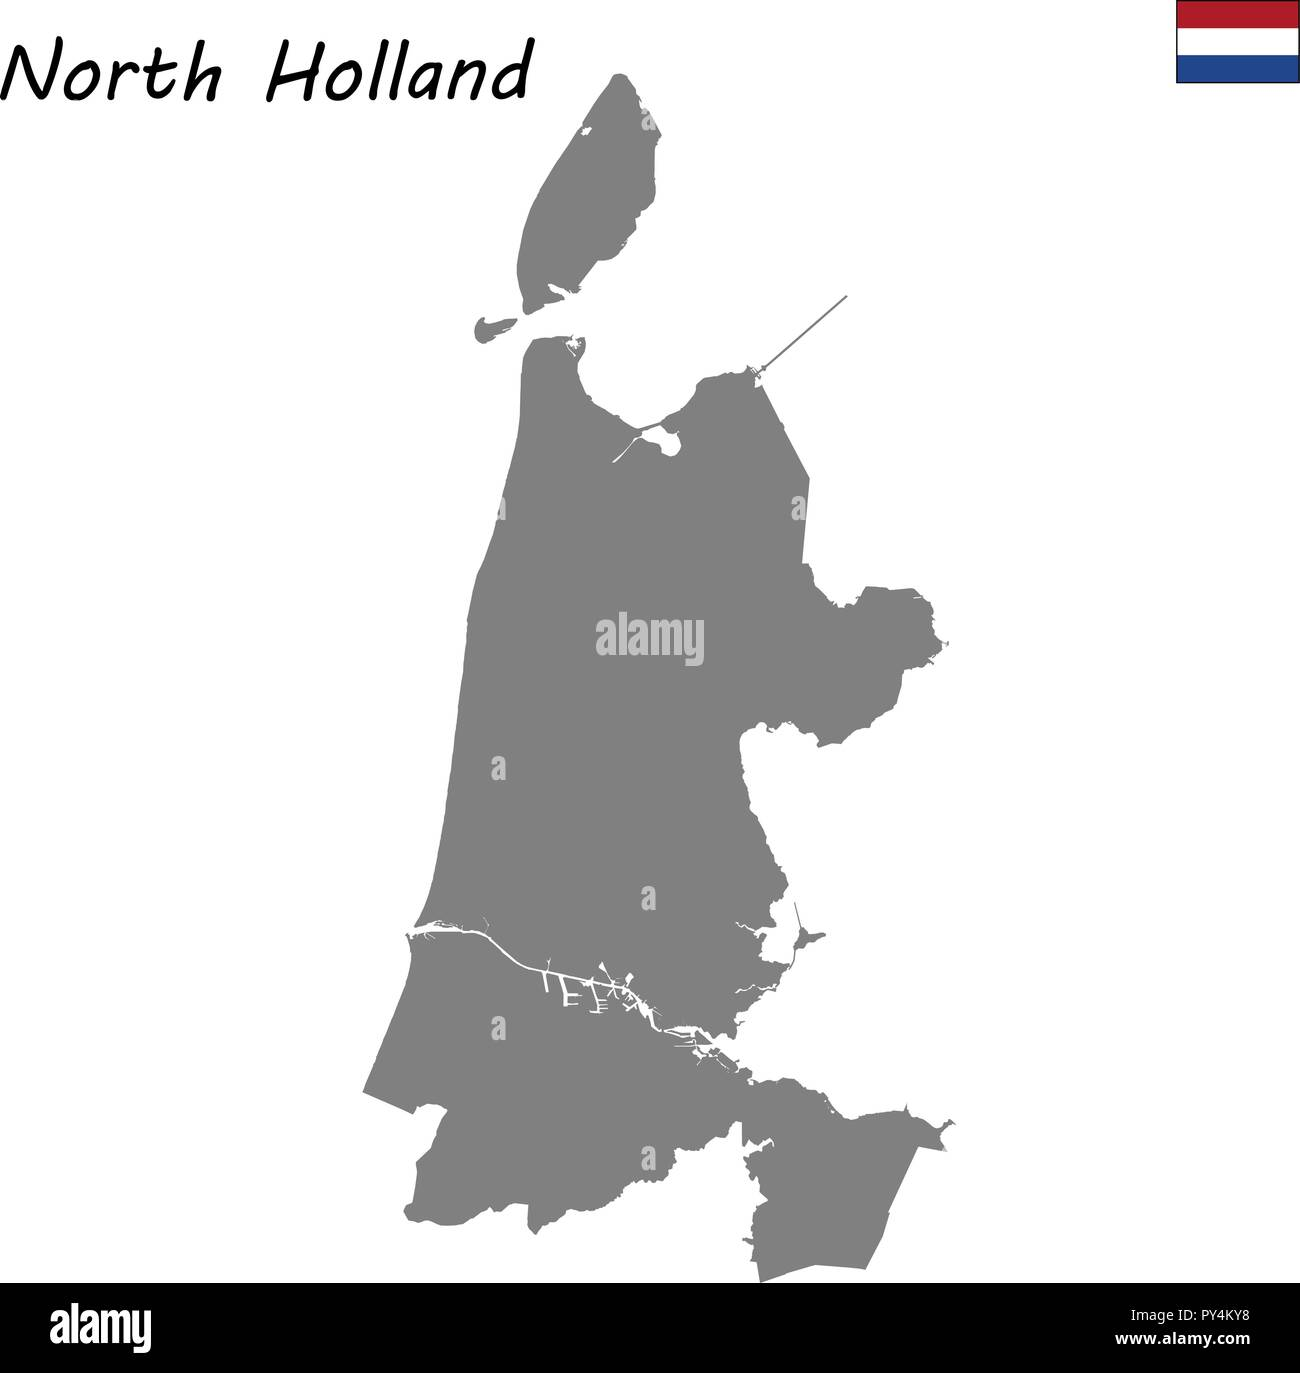 High Quality map province of Netherlands. North Holland - Stock Vector